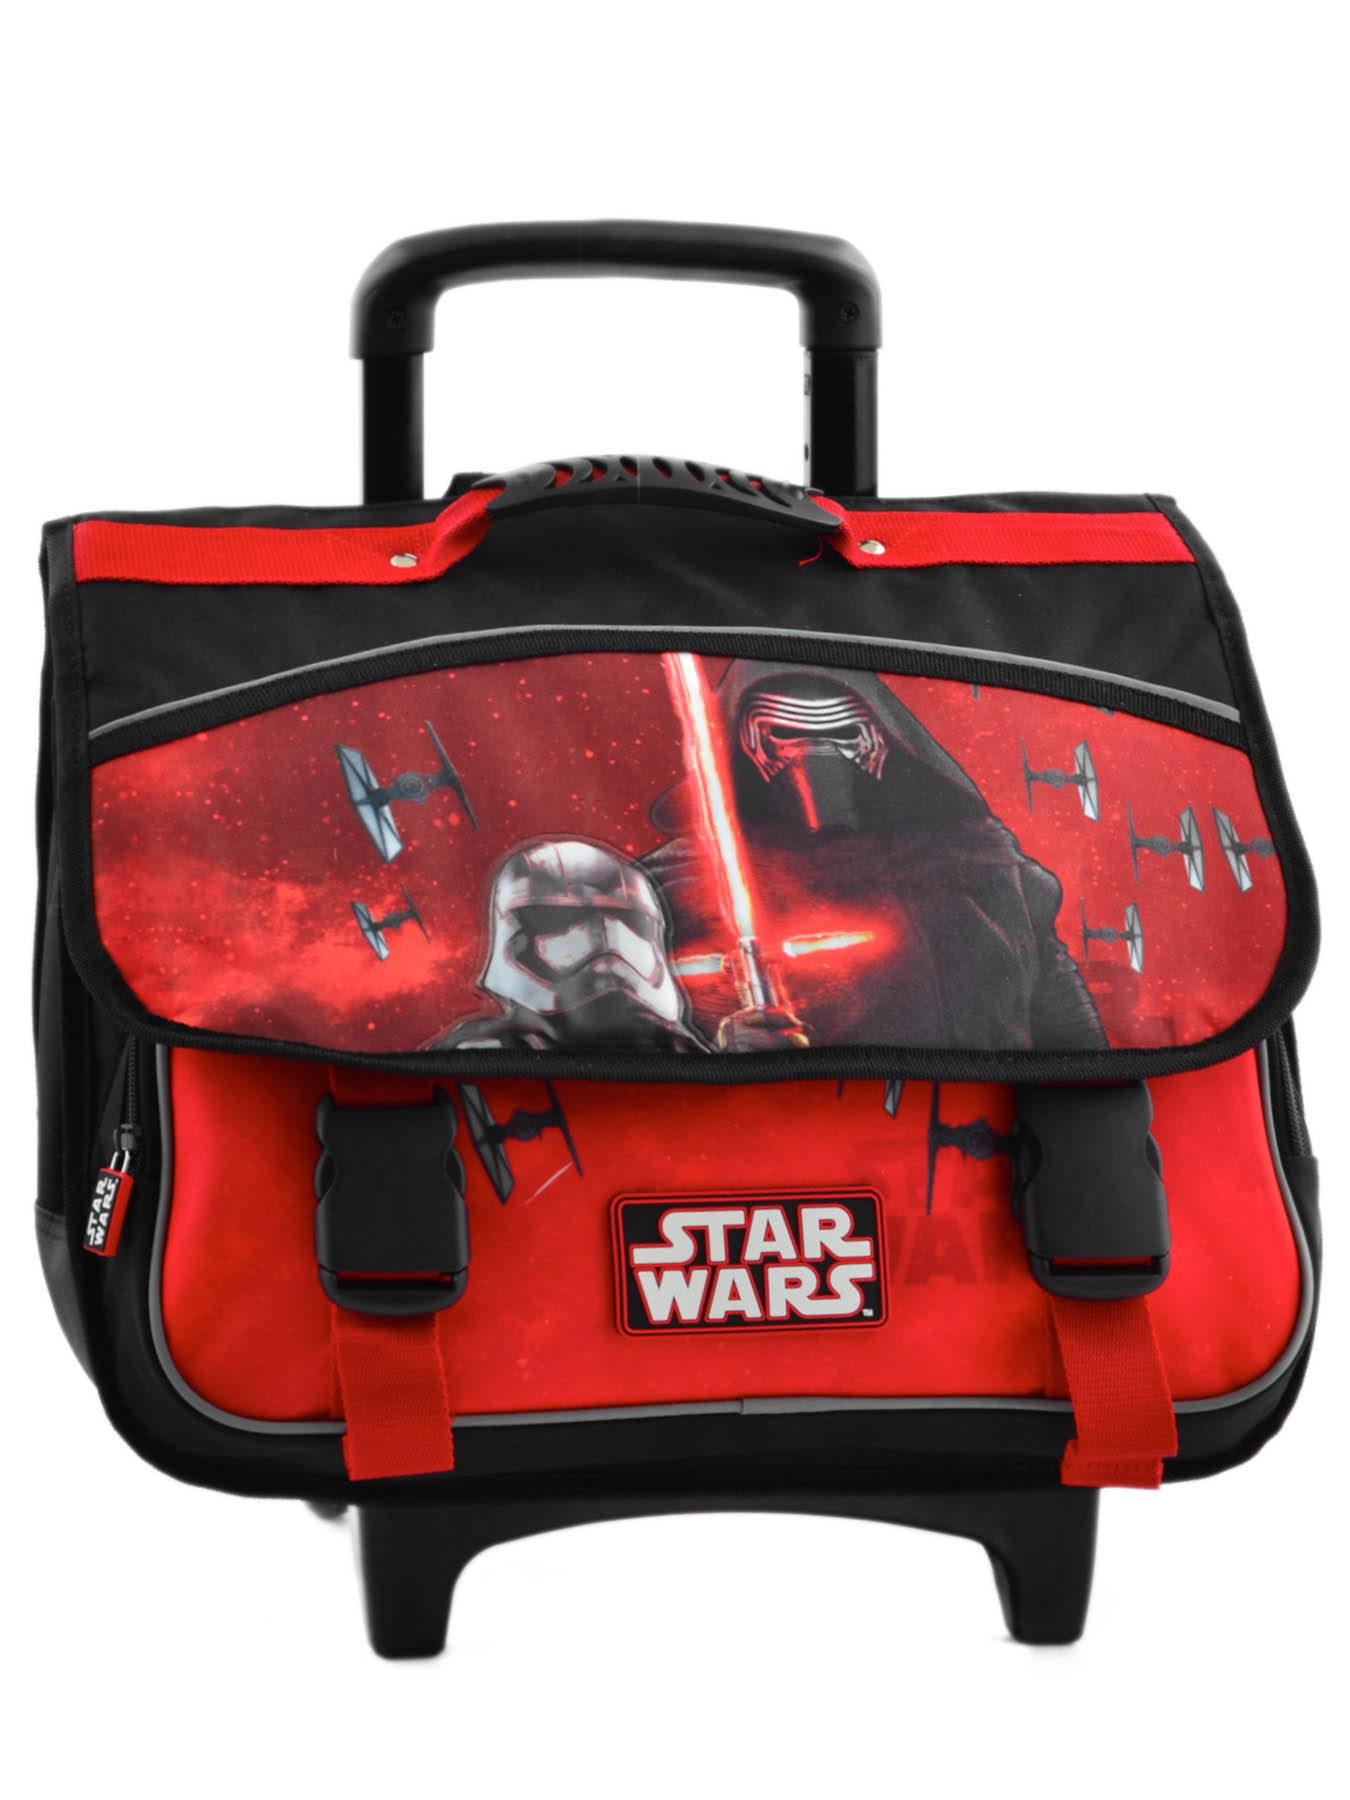 cartable roulettes star wars the force awakens the force awakens en vente au meilleur prix. Black Bedroom Furniture Sets. Home Design Ideas